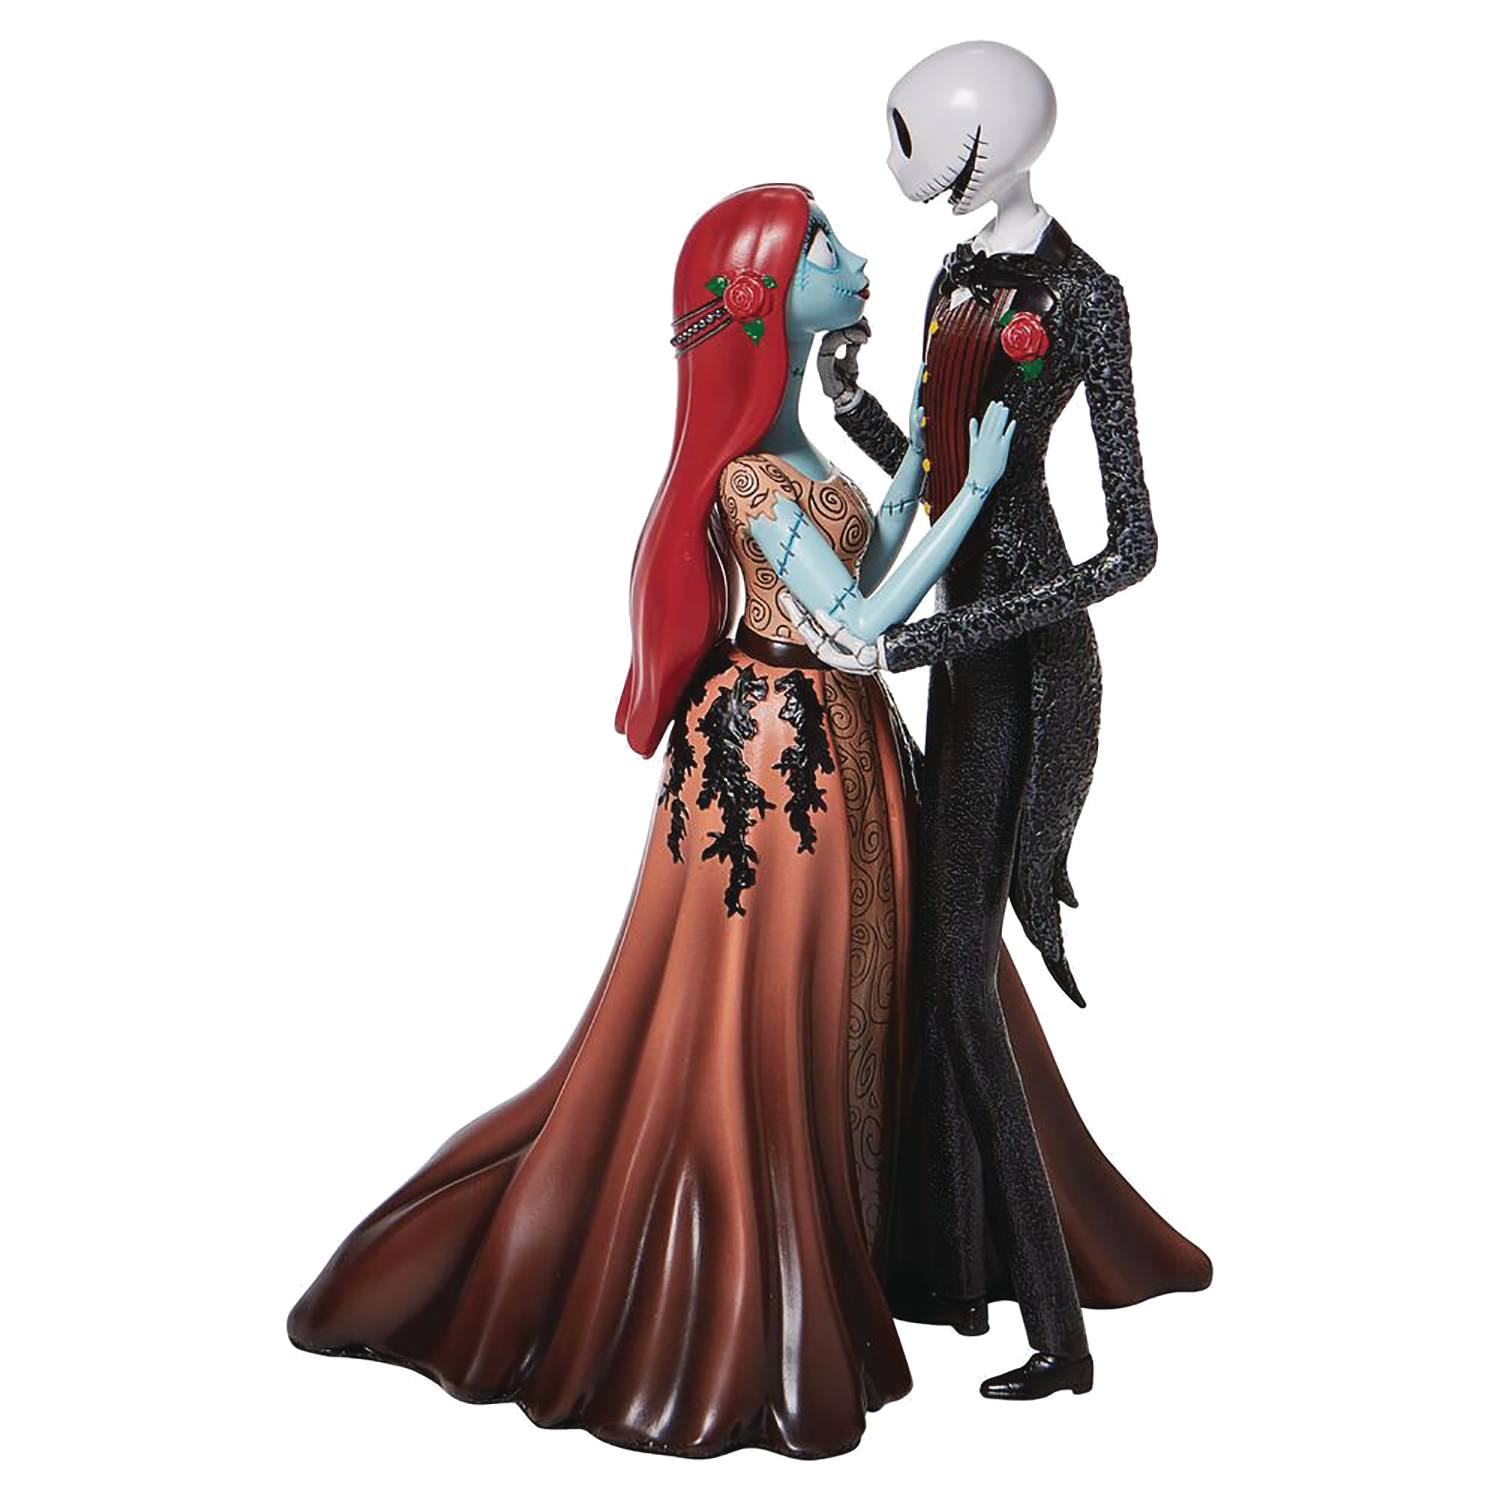 NBX JACK & SALLY COUTURE DE FORCE 9IN FIGURE